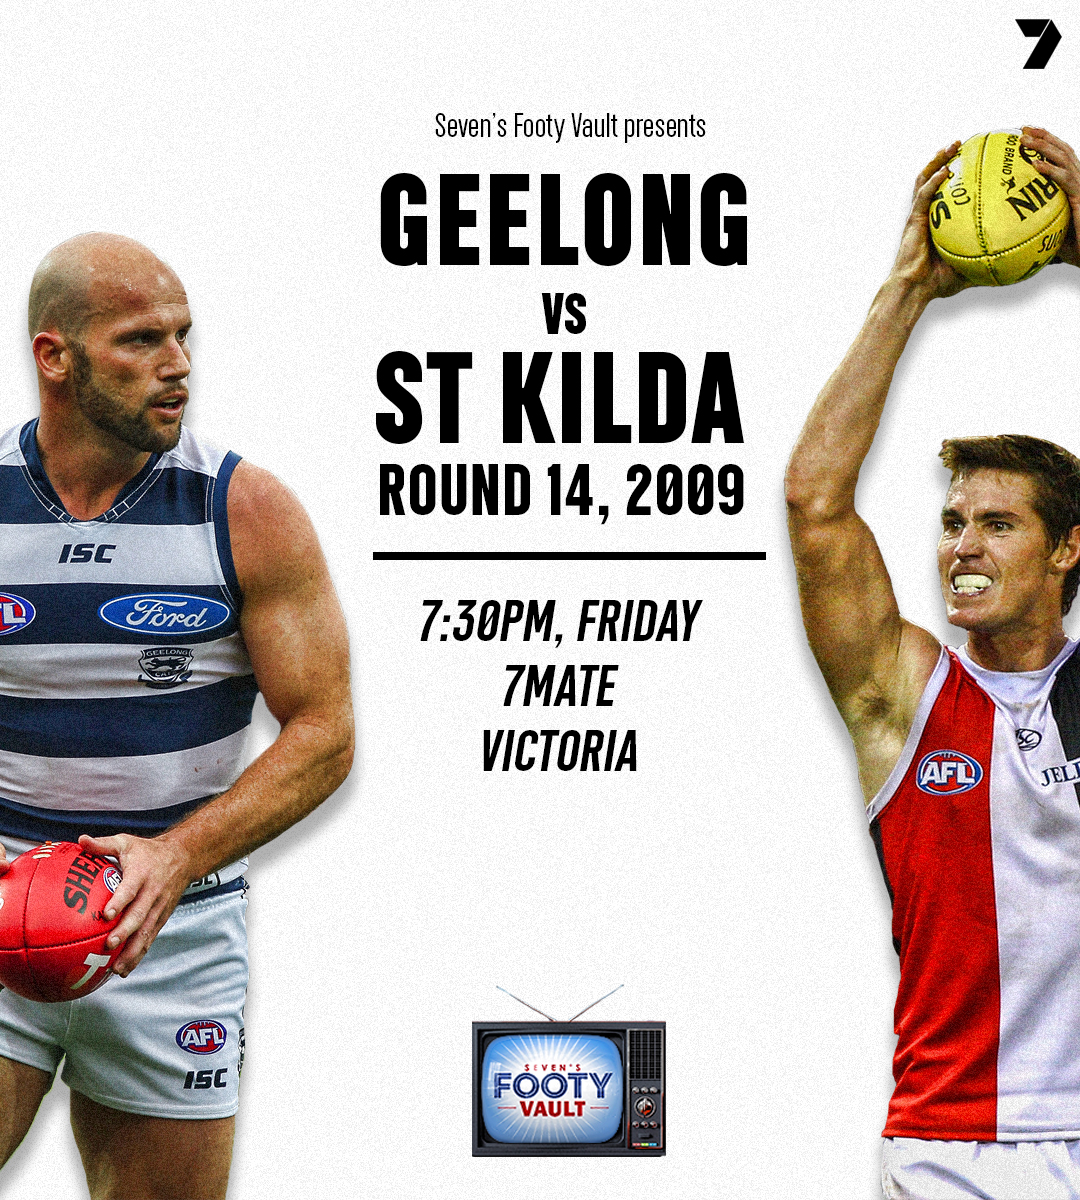 Bring it on! Watch all the action through @7mate as we take you back to 2009, with full coverage through our social channels.